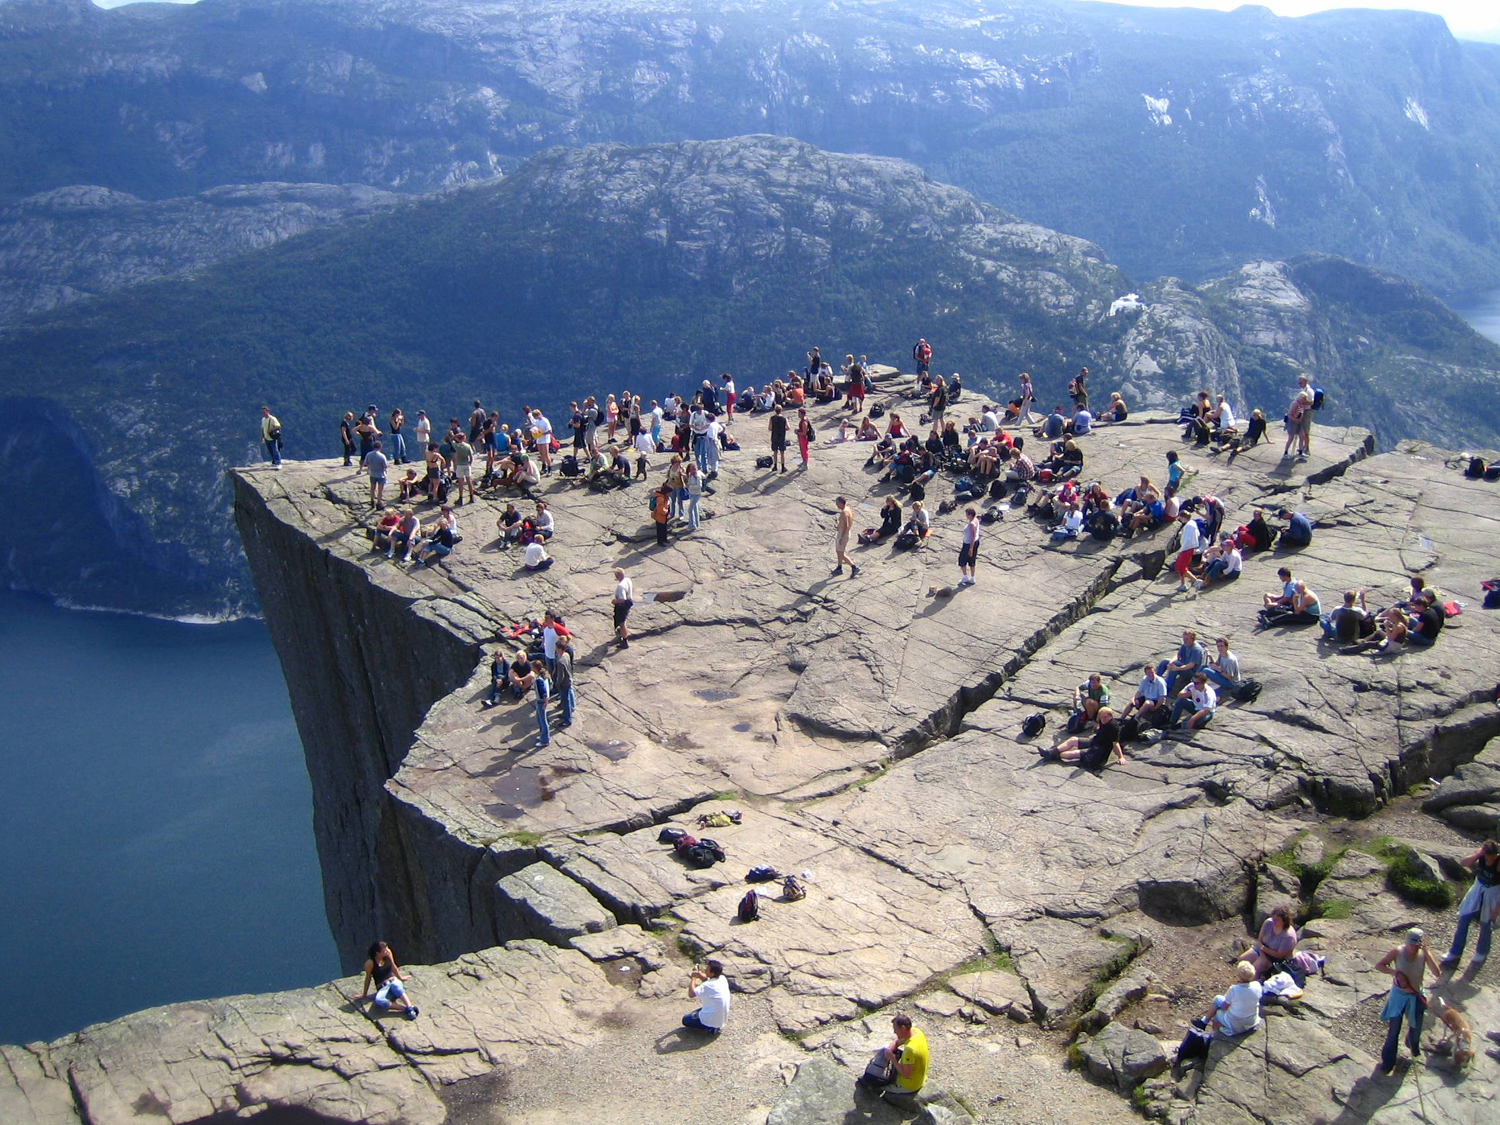 """Preikestolen or Prekestolen, also known by the English translations of Preacher's Pulpit or Pulpit Rock, and by the old local name Hyvlatonnå (""""the carpenter-plane's blade""""), is a massive cliff 604 metres (1982 feet) above Lysefjorden, opposite the Kjerag plateau, in Forsand, Ryfylke, Norway. The top of the cliff is approximately 25 by 25 metres (82 by 82 feet), almost flat, and is a famous tourist attraction in Norway."""